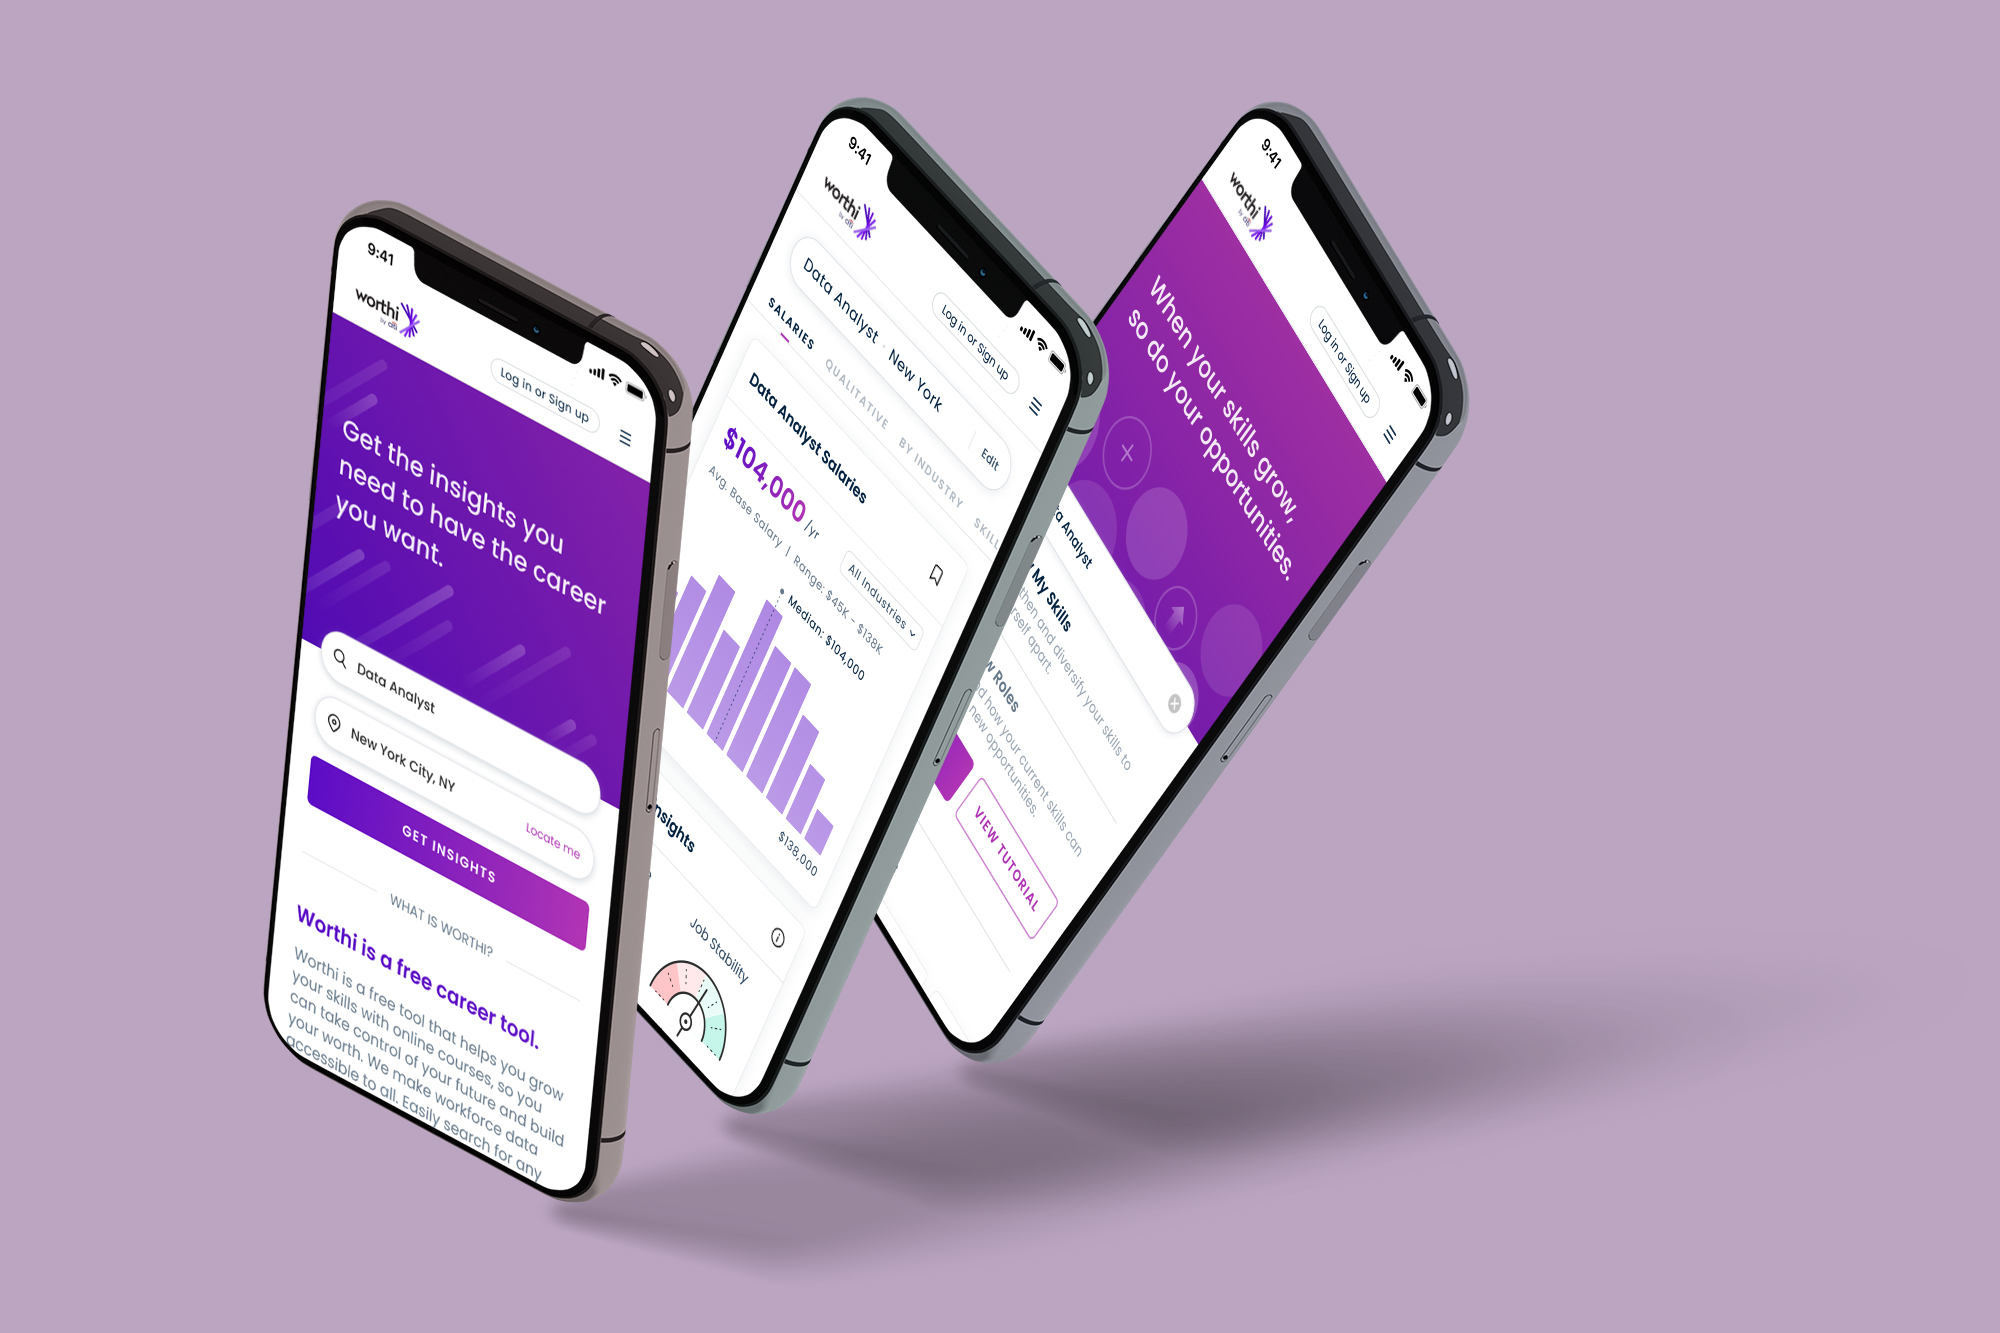 Mobile phones on purple background, links to Worthi by Citi